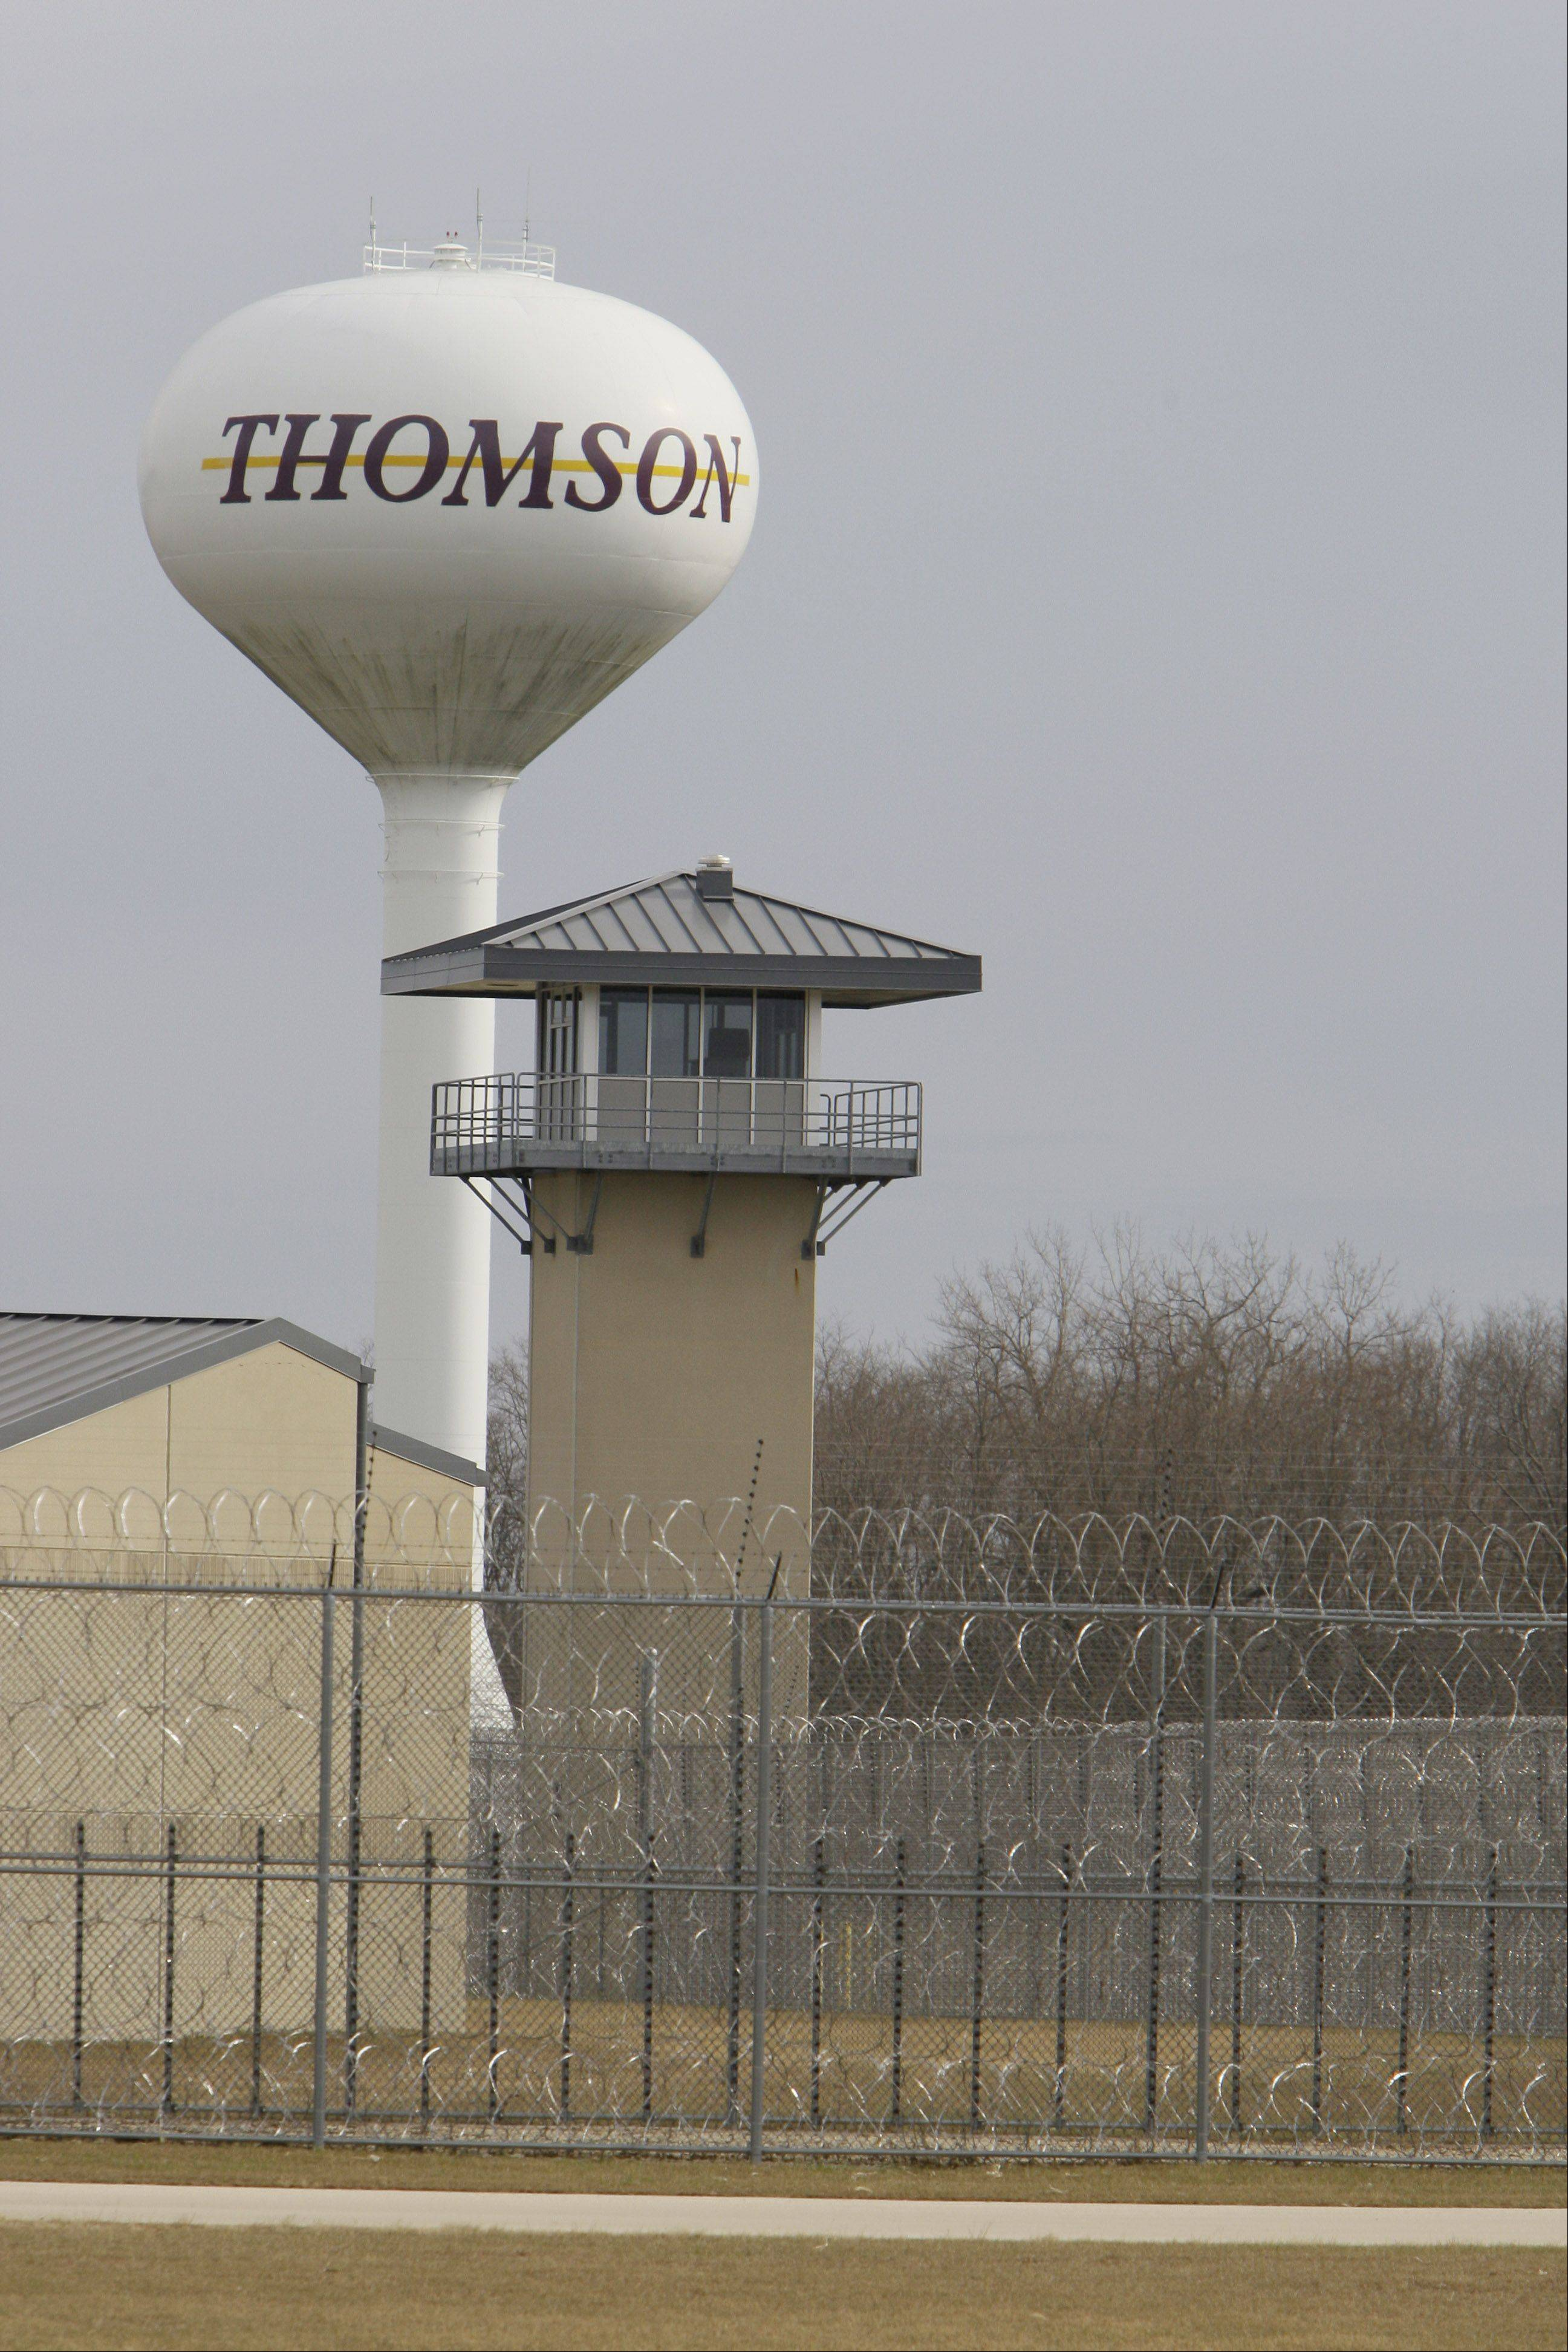 The U.S. Senate's Appropriations Committee approved funding in July to reactivate Thomson prison.